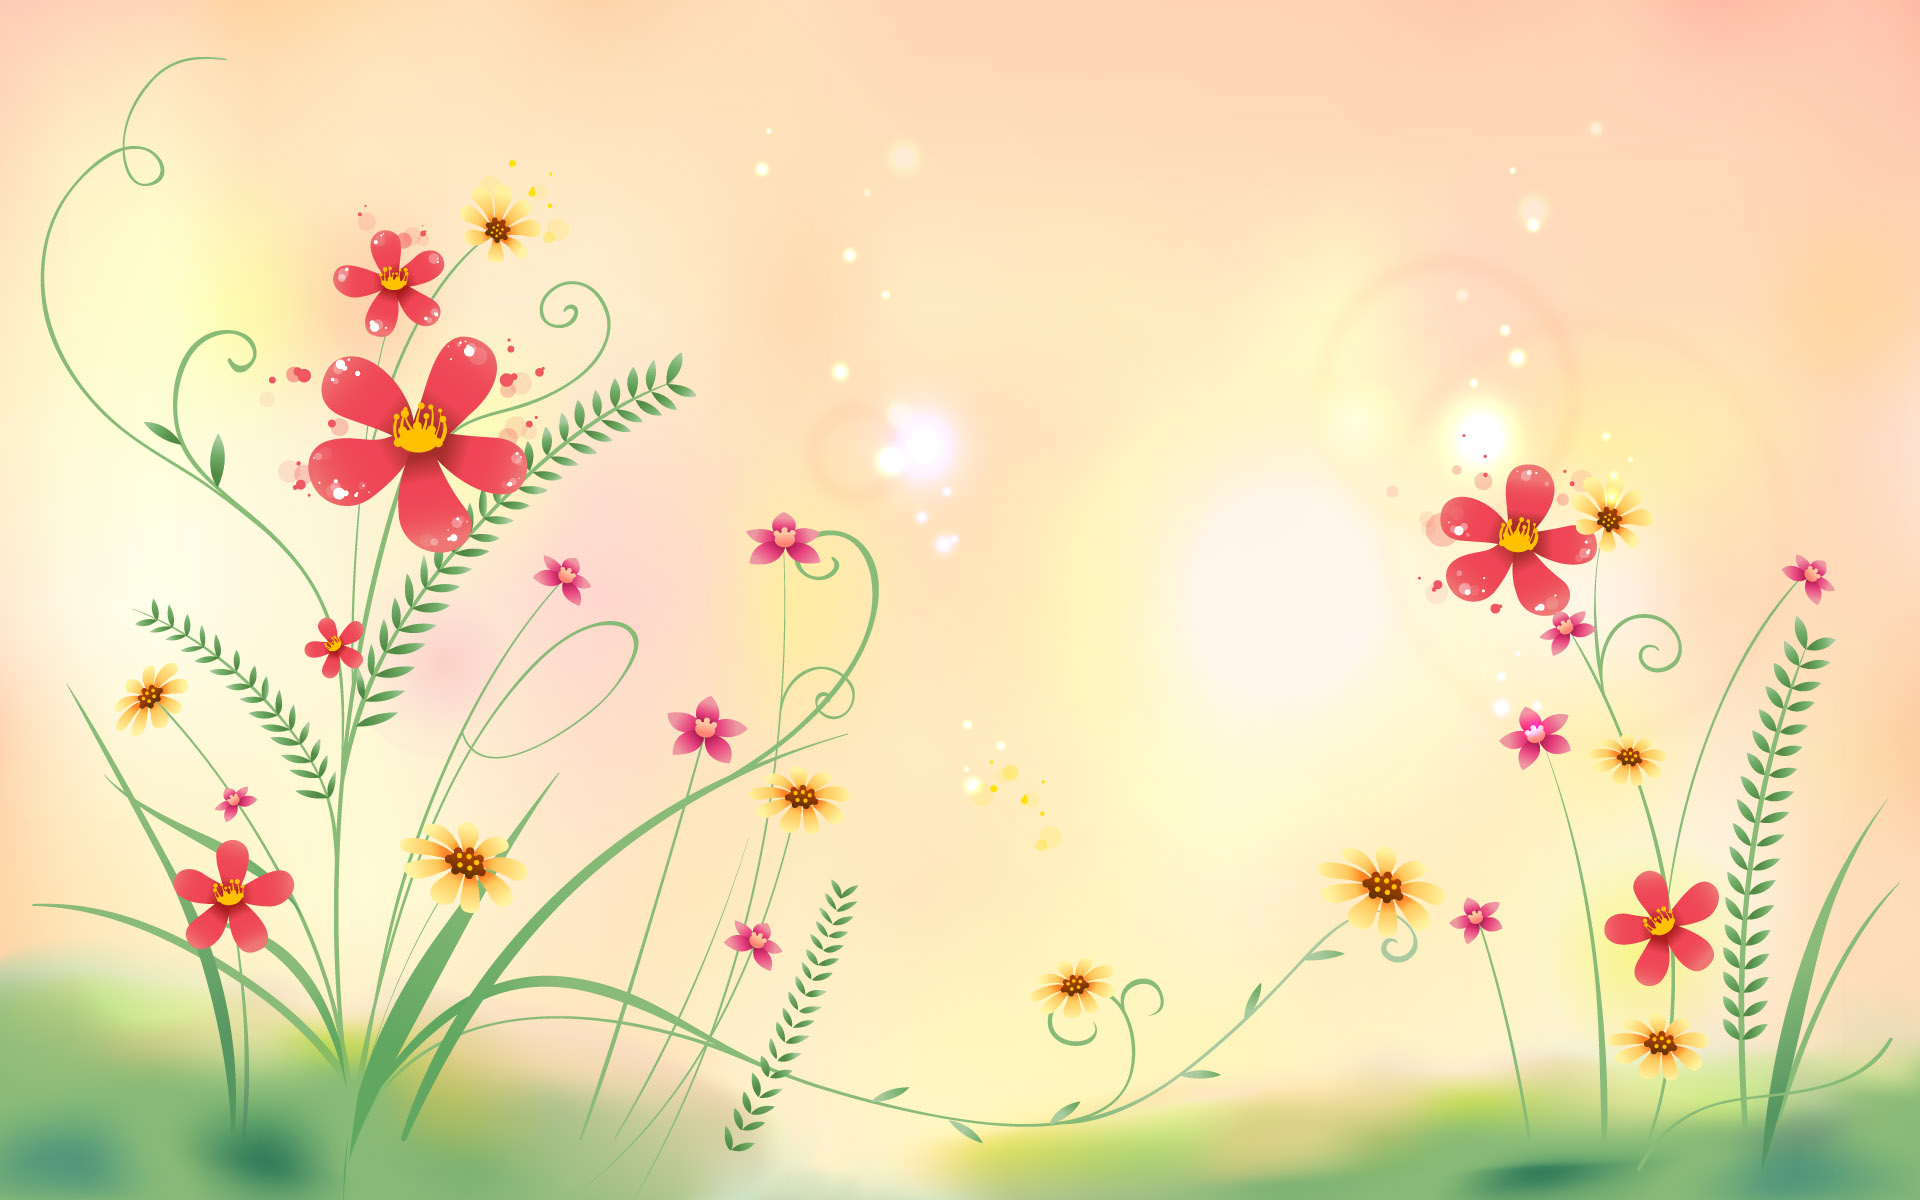 Abstract Flowers Floral Free Wallpaper Wallpaperjam Com